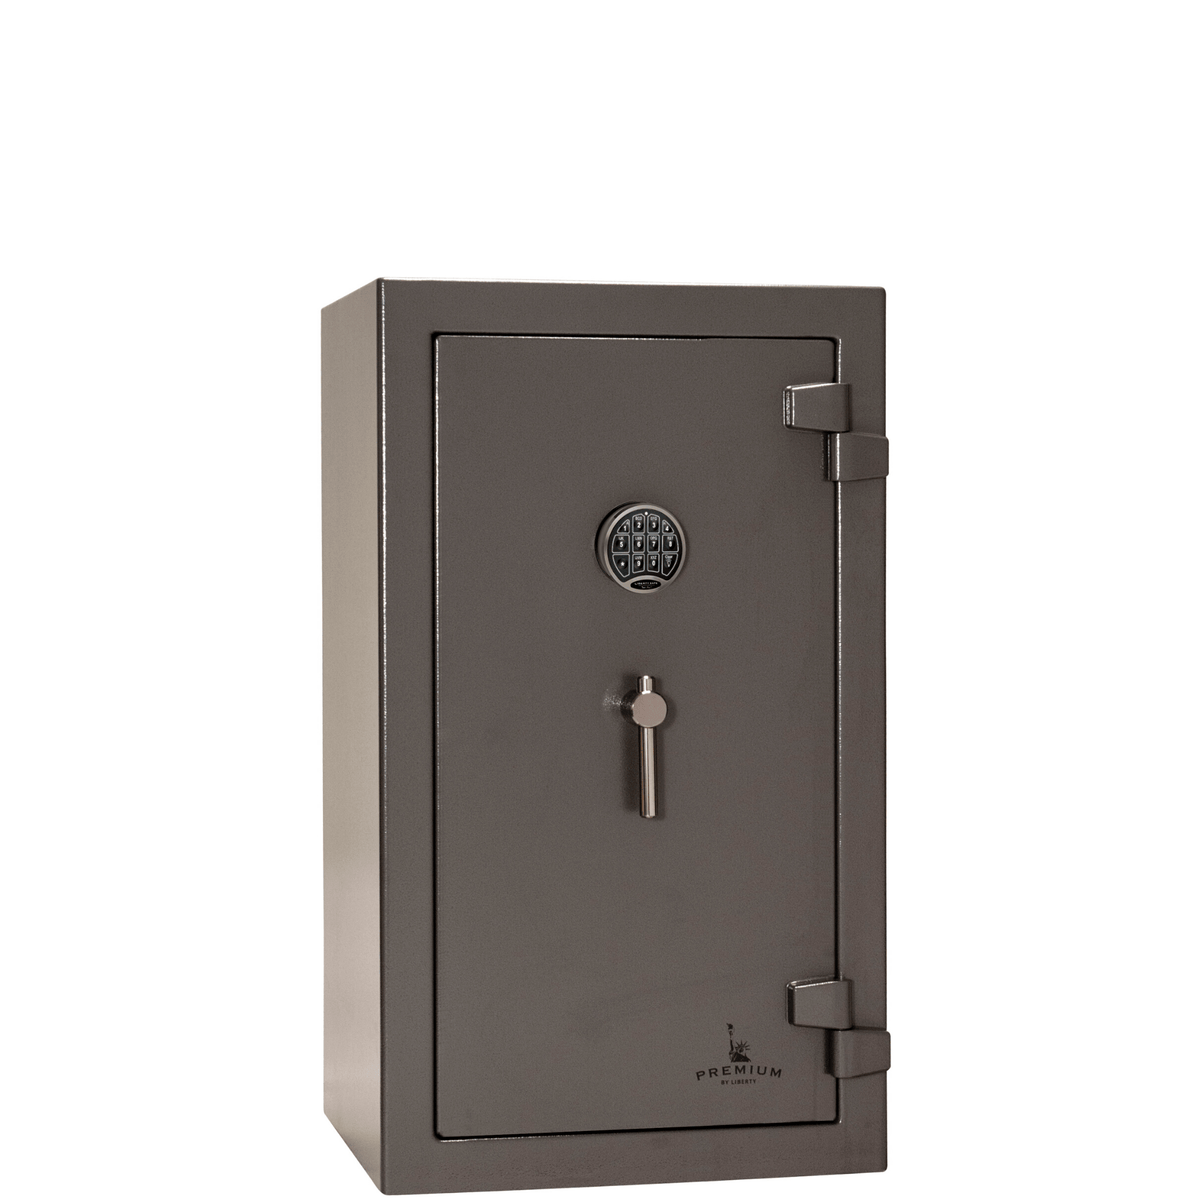 "Premium Home | 12 | 90 Minute Fire Protection | Gray | Electronic Lock | Dimensions: 42""(H) x 24""(W) x 22.5""(D)"